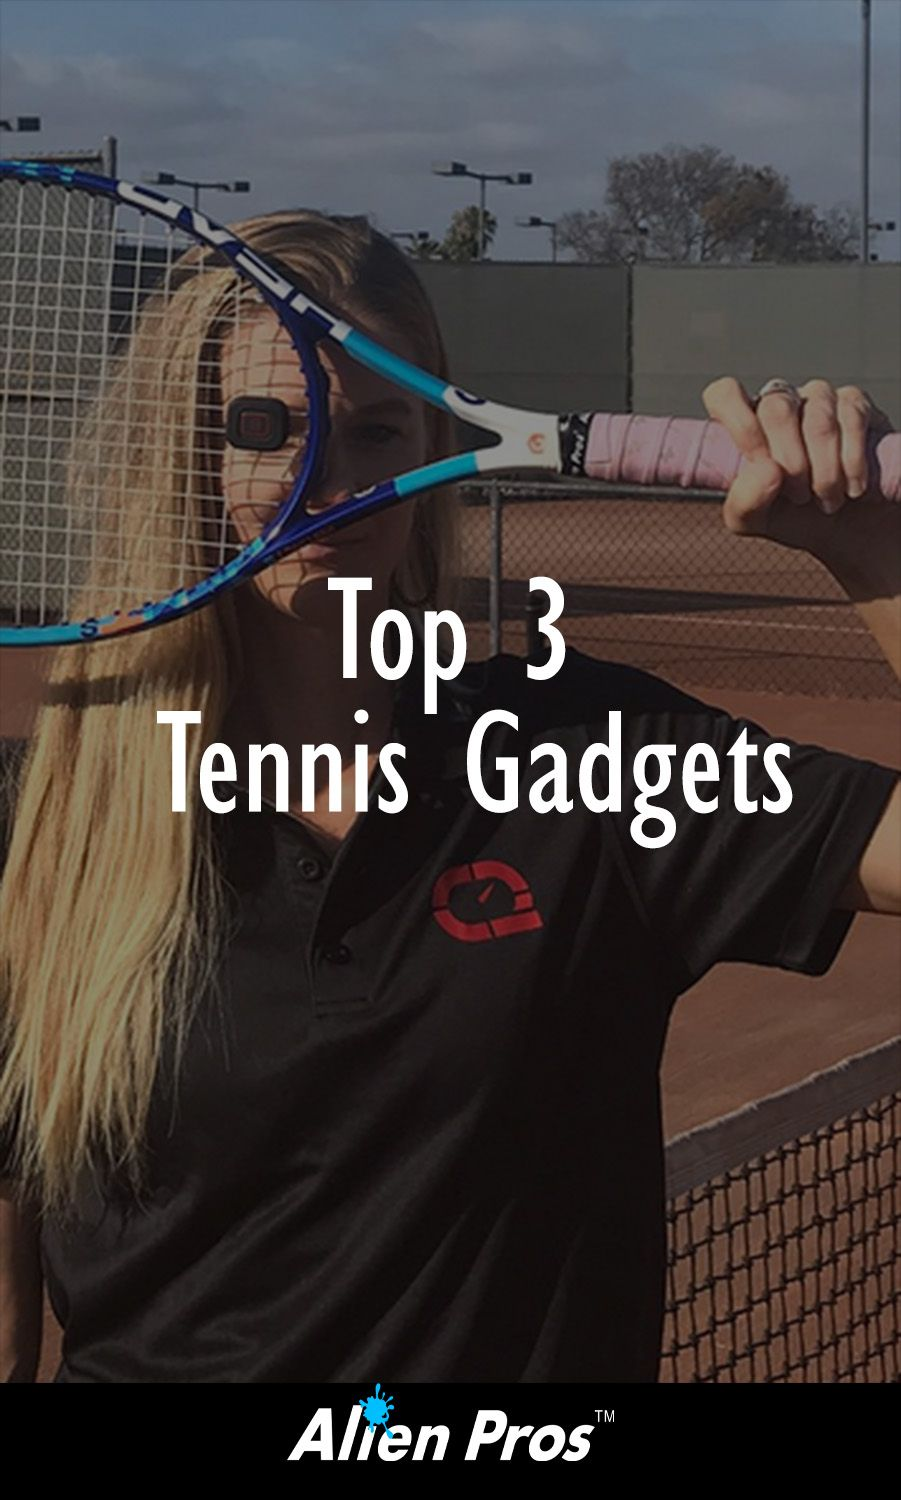 Tennis and Technology! Check out our article about the